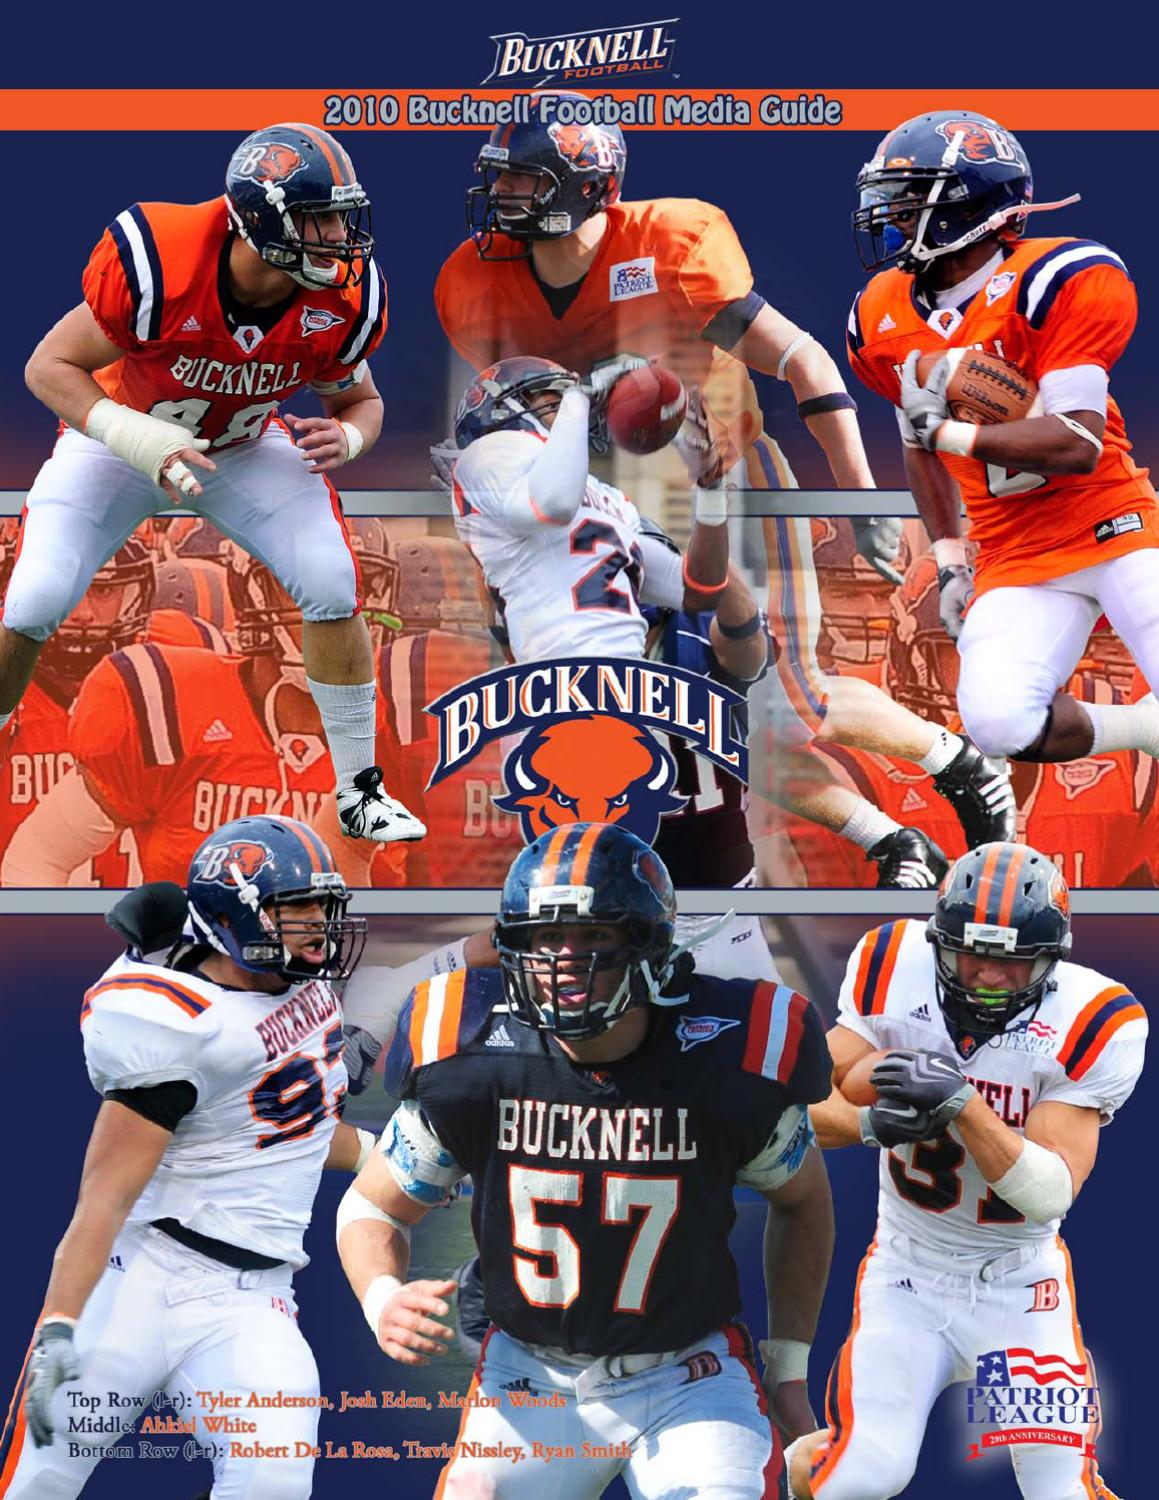 2010 Bucknell Football Media Guide by Bucknell University issuu  for sale